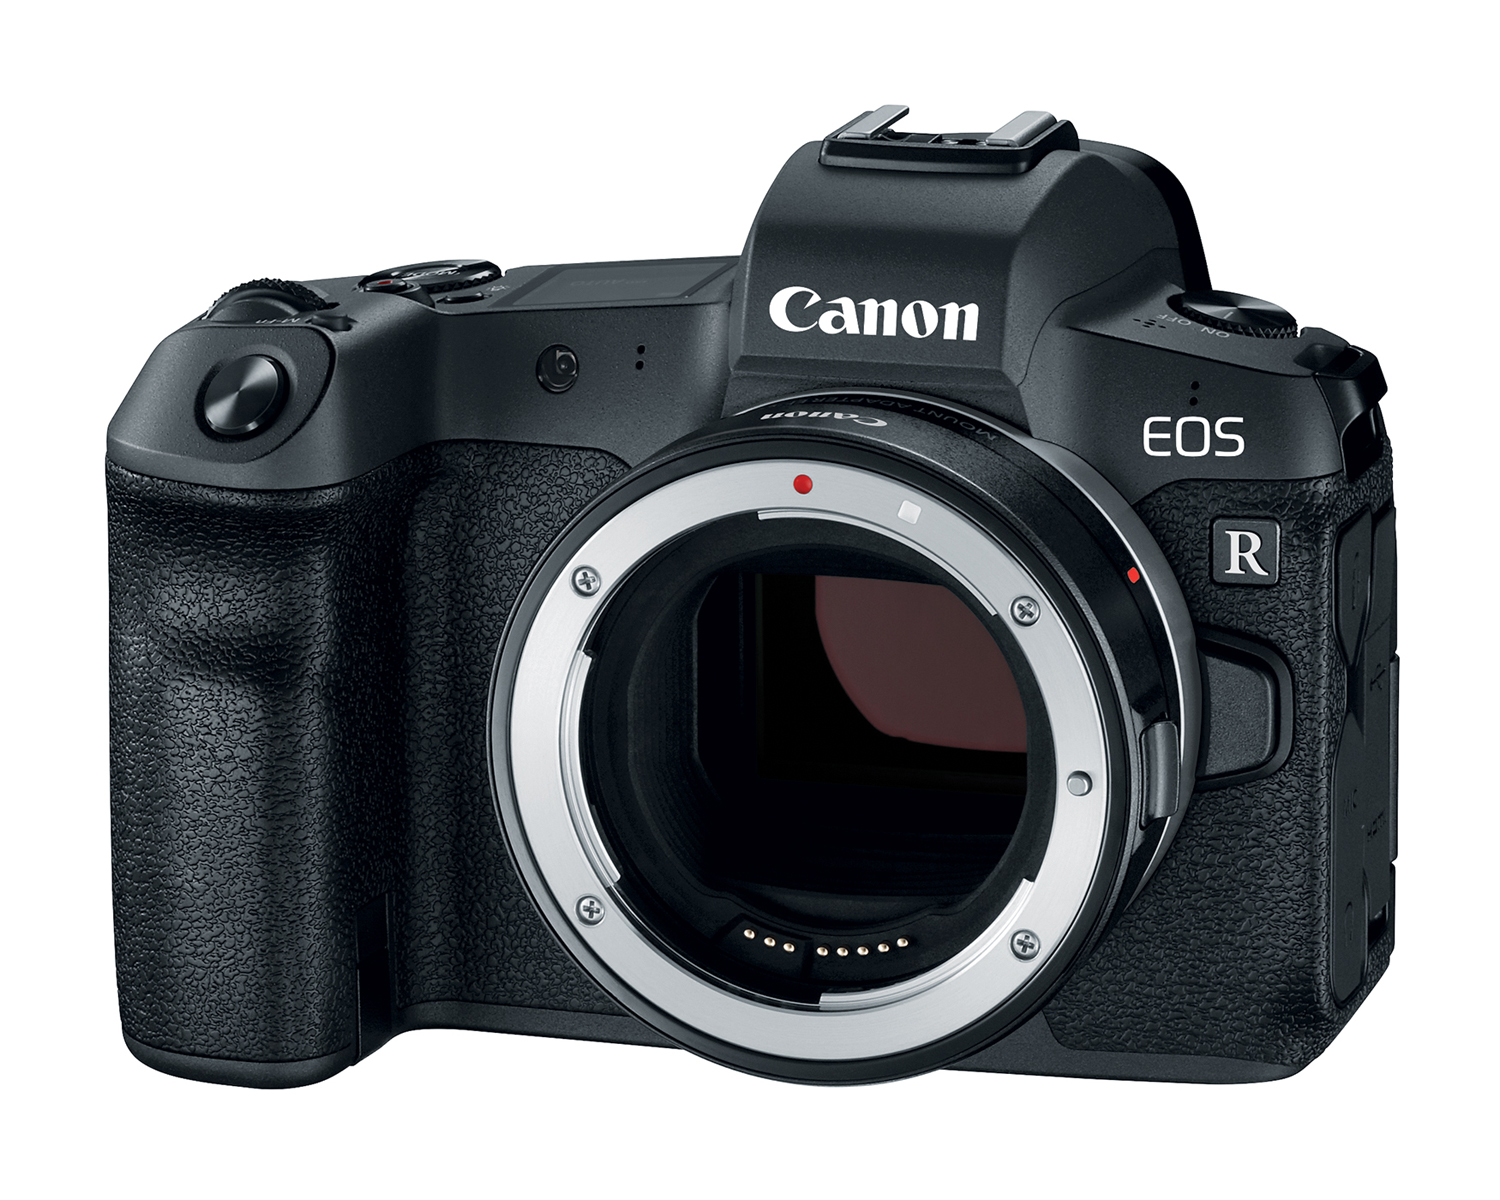 Next Canon EOS R (high Resolution) Model To Be Announced Before Photokina 2019, Most Likely